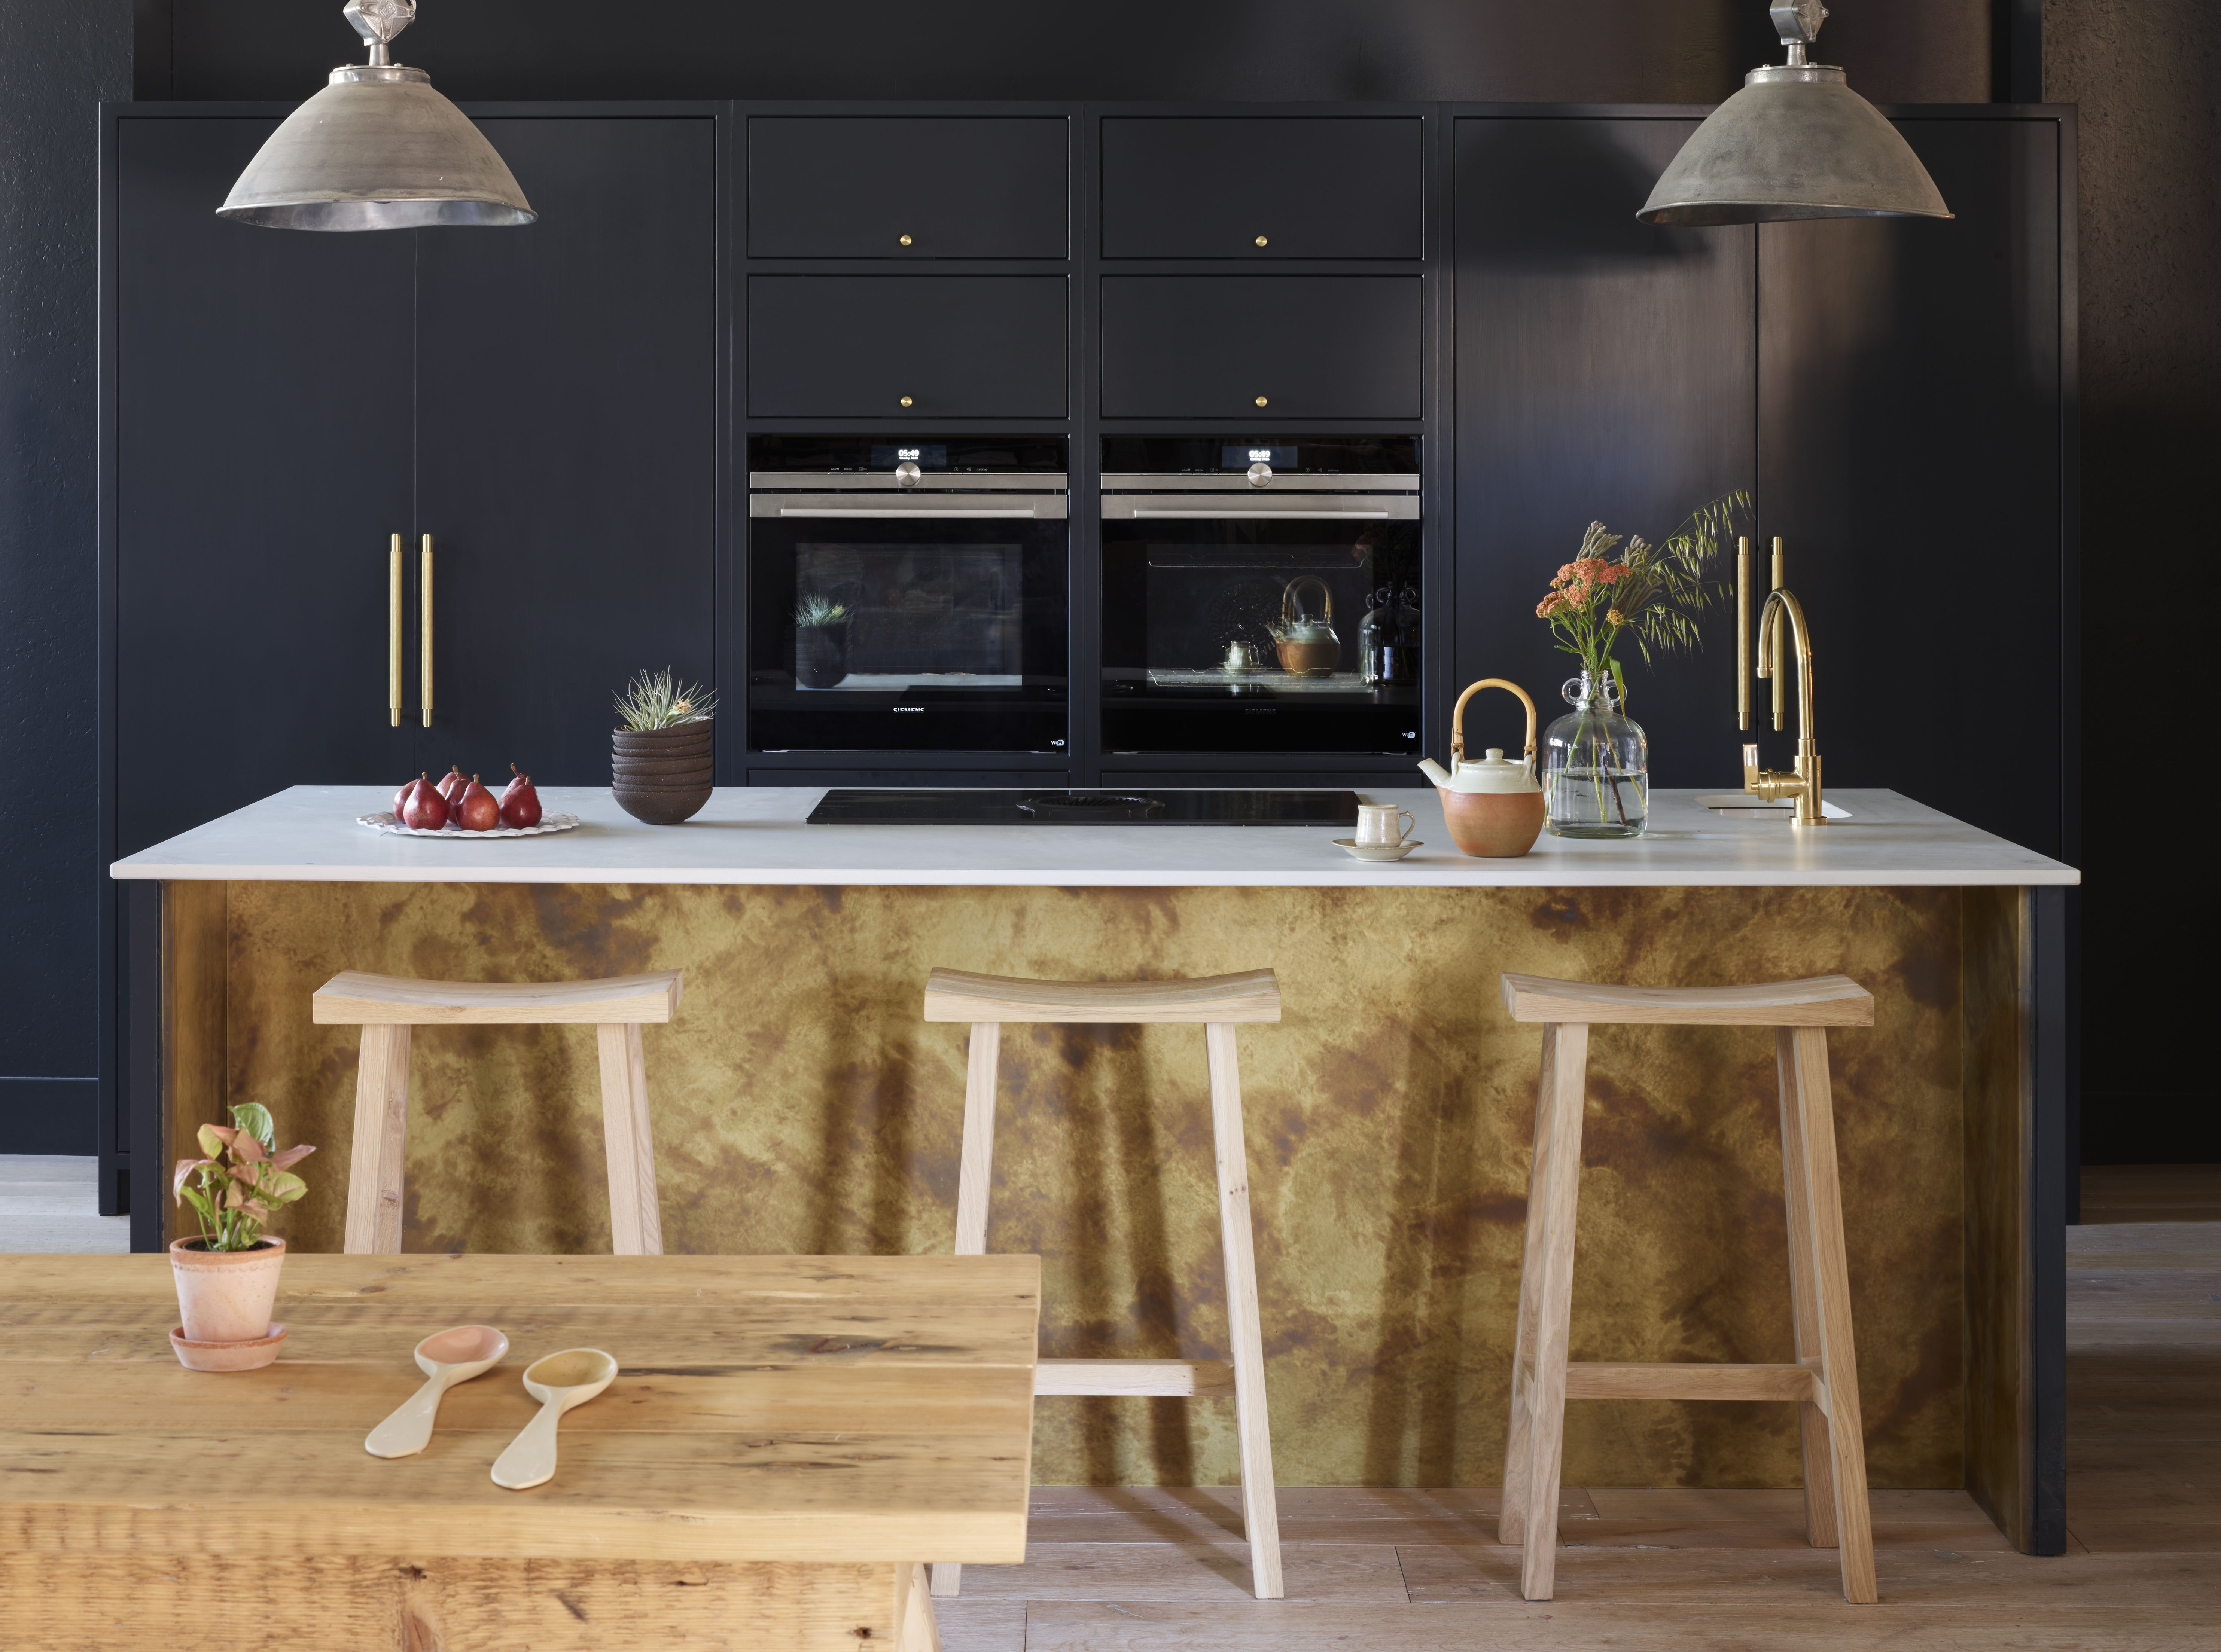 12 black kitchen ideas that will make you want to go over